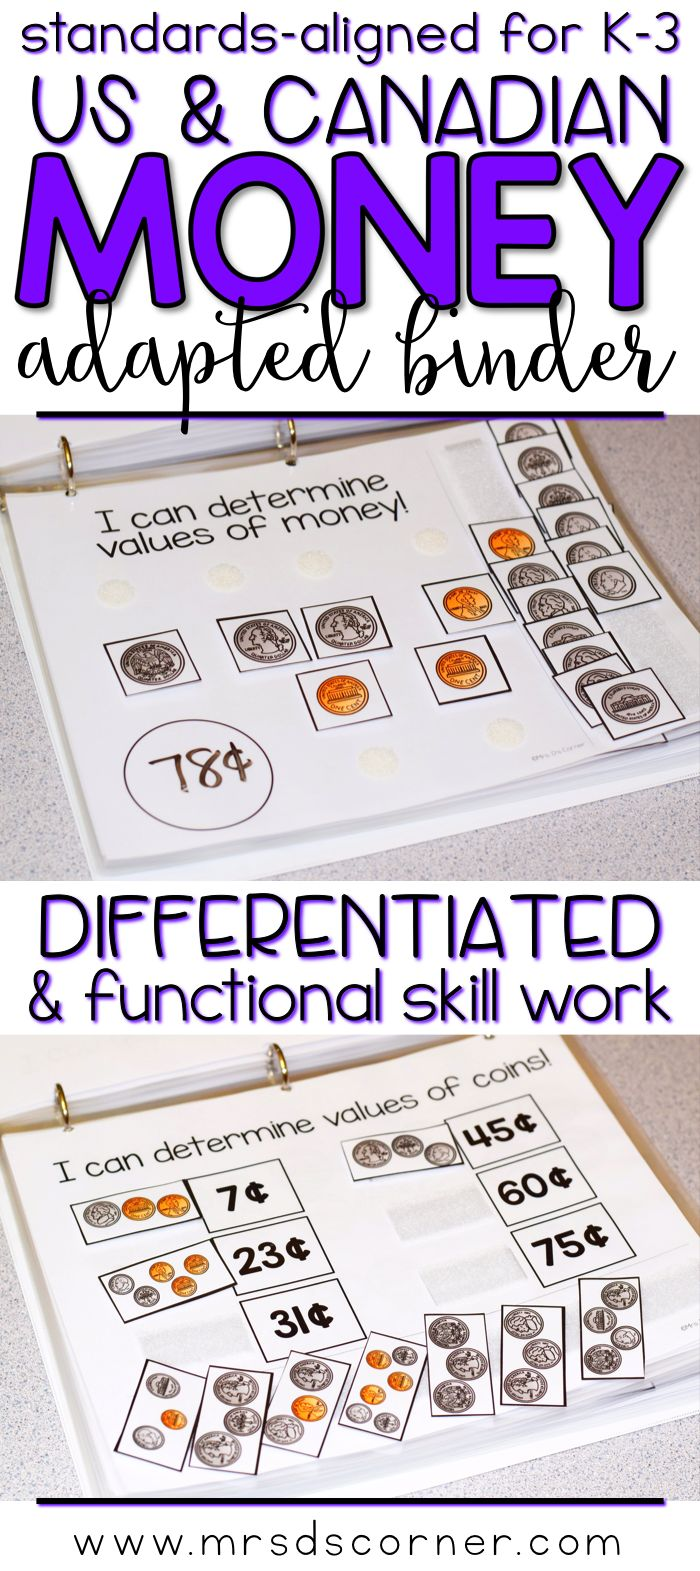 MONEY * Functional and differentiated skill work that covers adding and subtracting mathematics standards-aligned topics for grades K-3, this Addition and Subtraction adapted work binder is the perfect addition to any elementary special education classroom. Includes US and Canadian currency. Includes value and names of bills and coins, Sorting money, Determining value of sets of money. Adapted Work Binders only at Mrs. D's Corner.